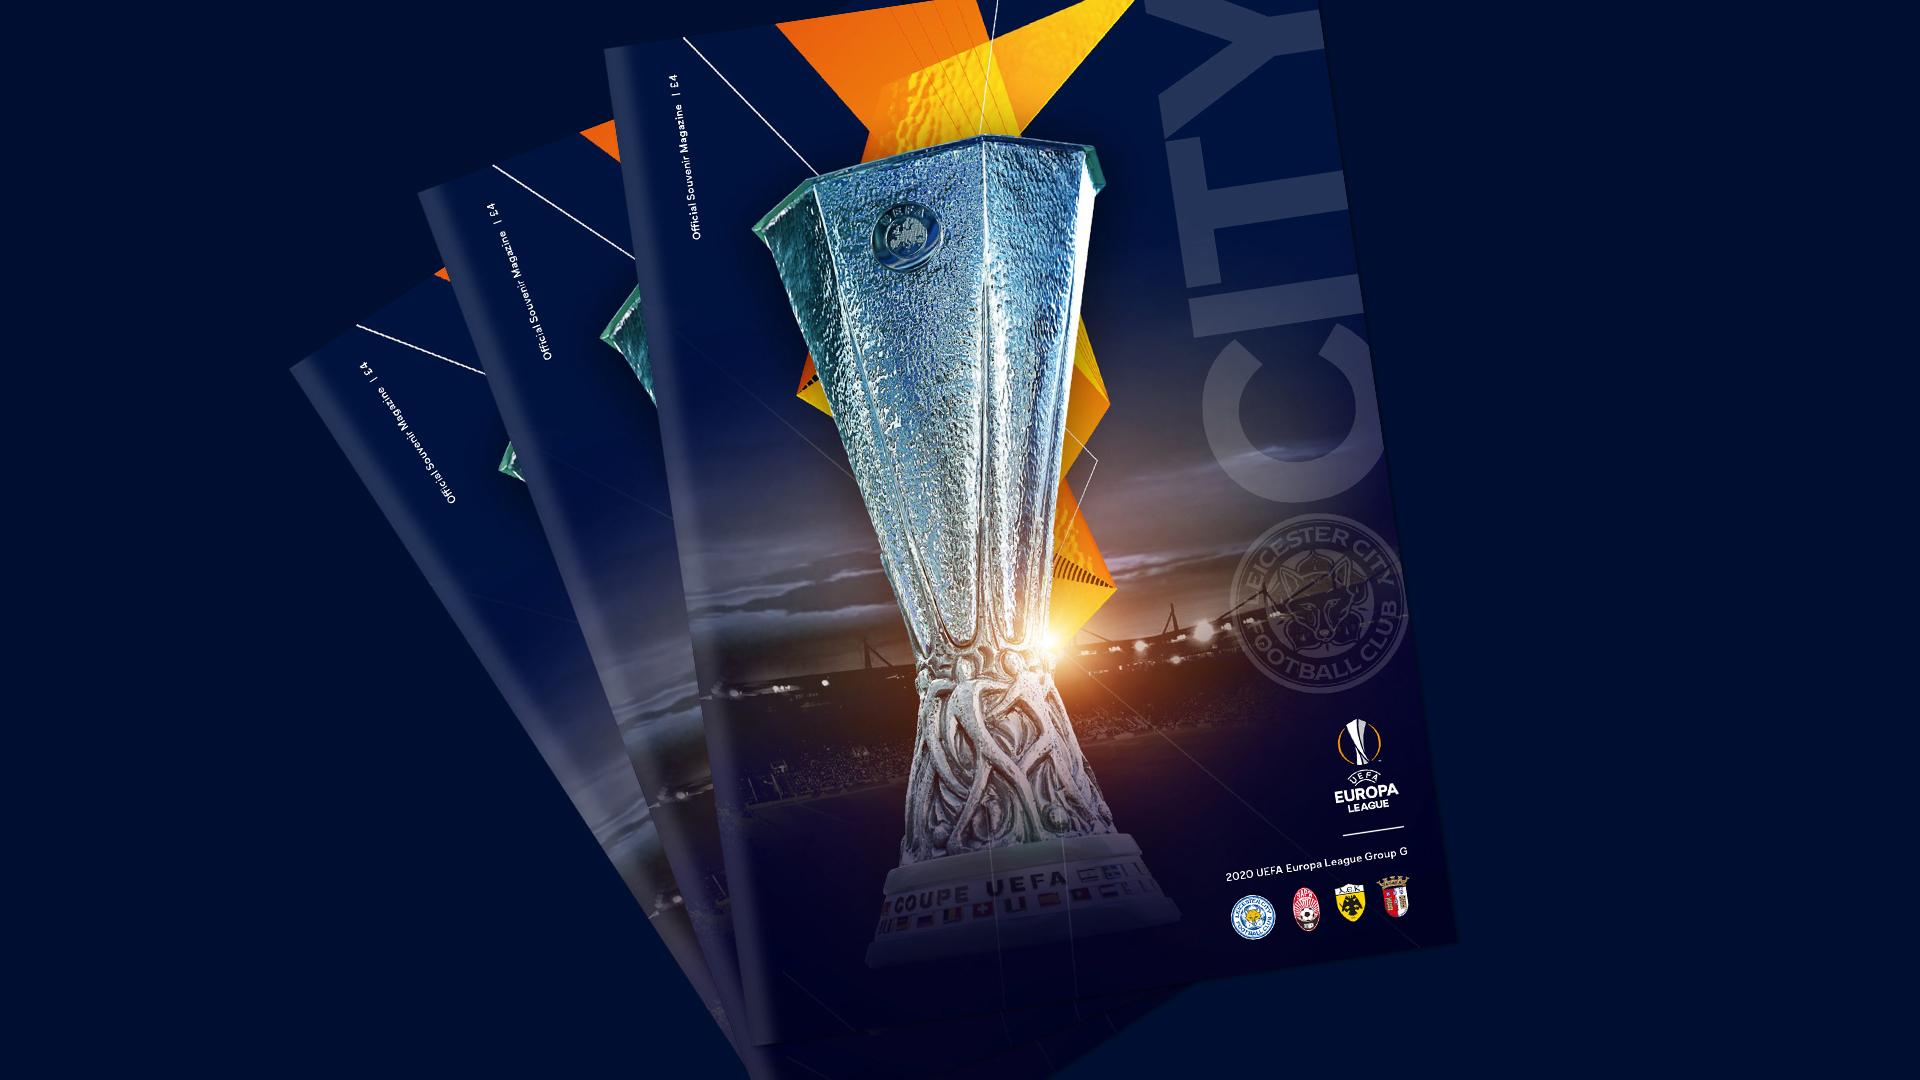 Limited Edition Uefa Europa League Programme Still Available